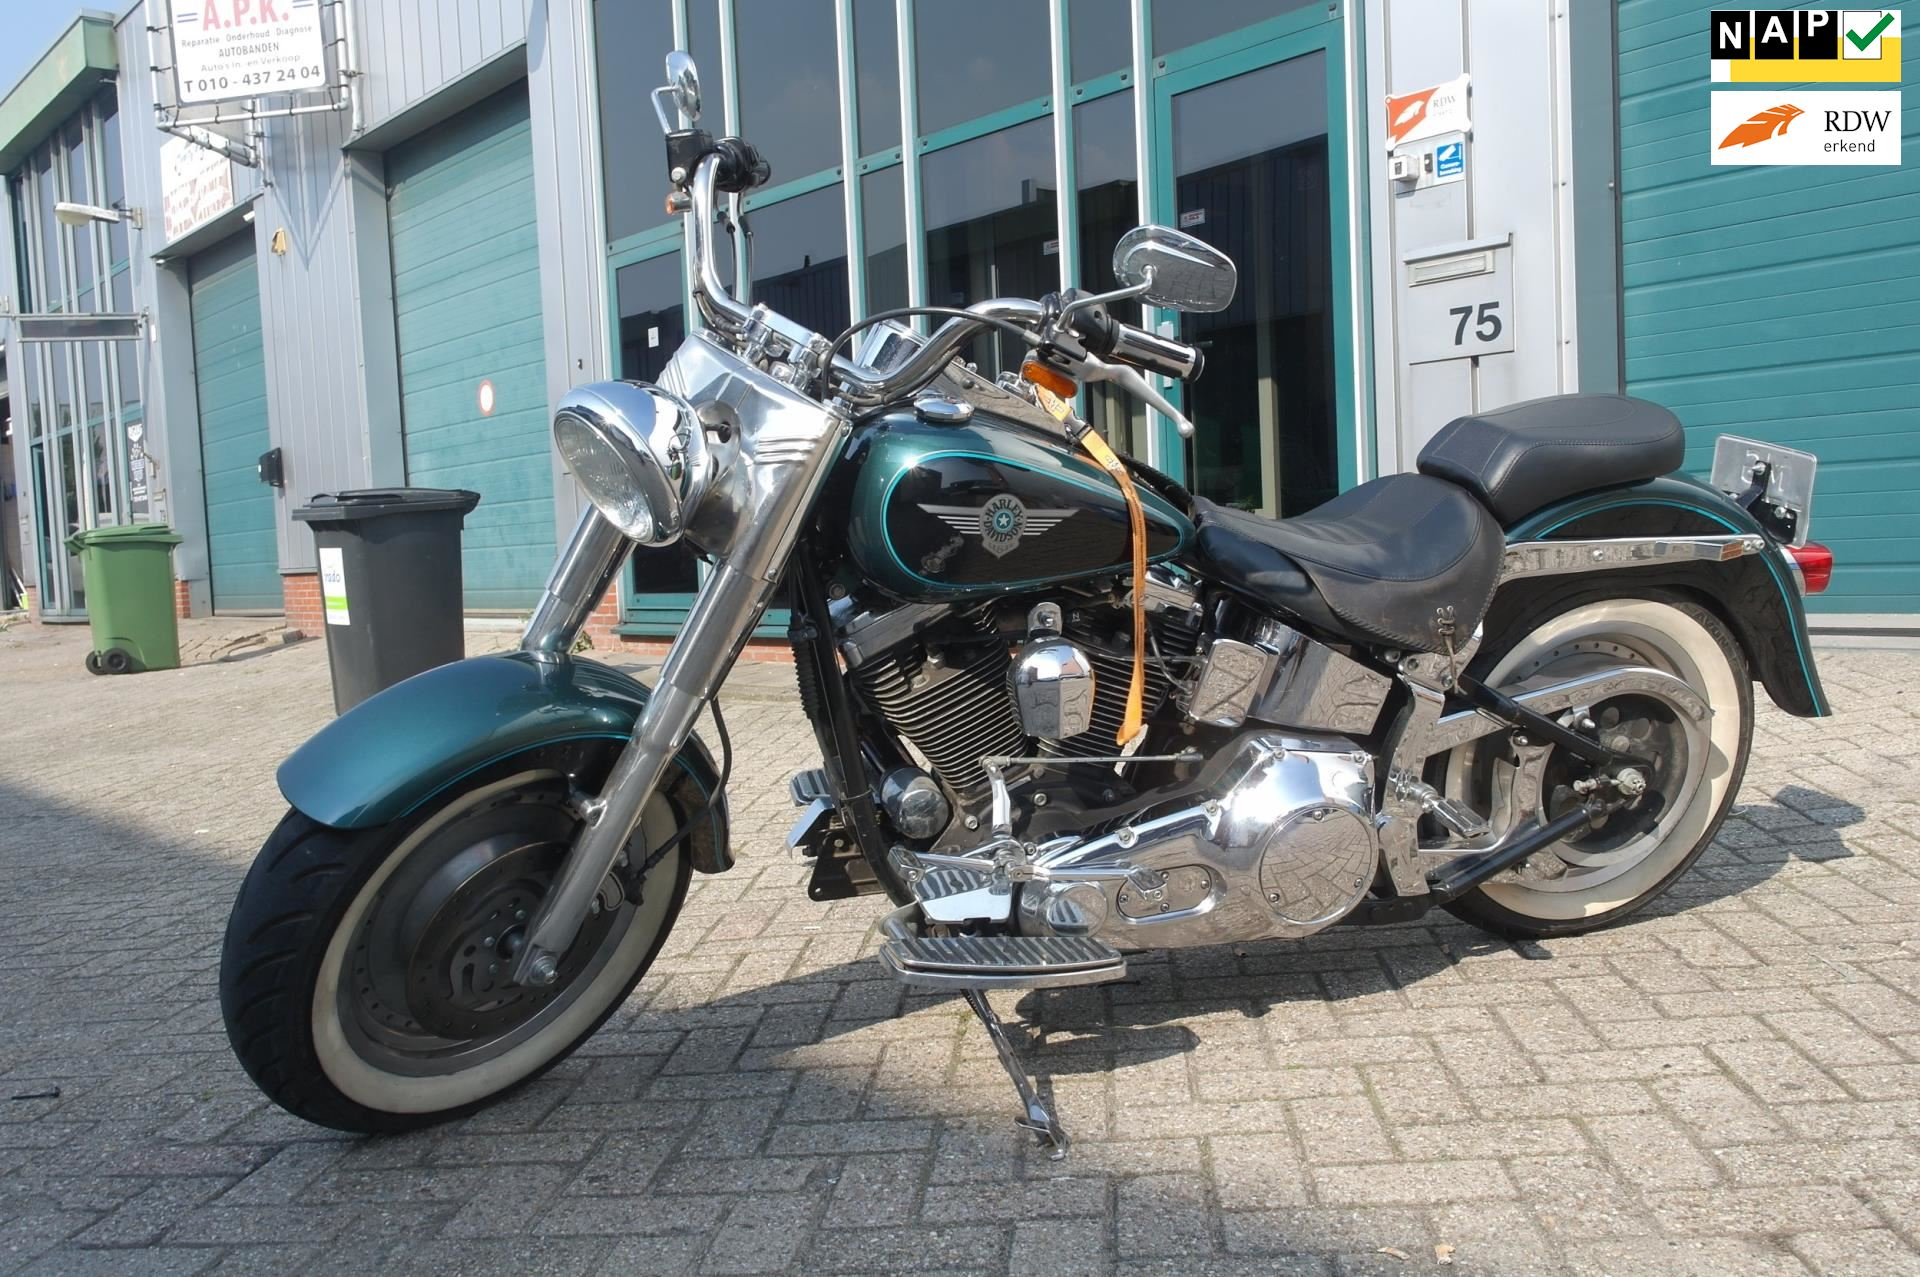 eigenbouw SOFTAIL occasion - Wolters Autohandel